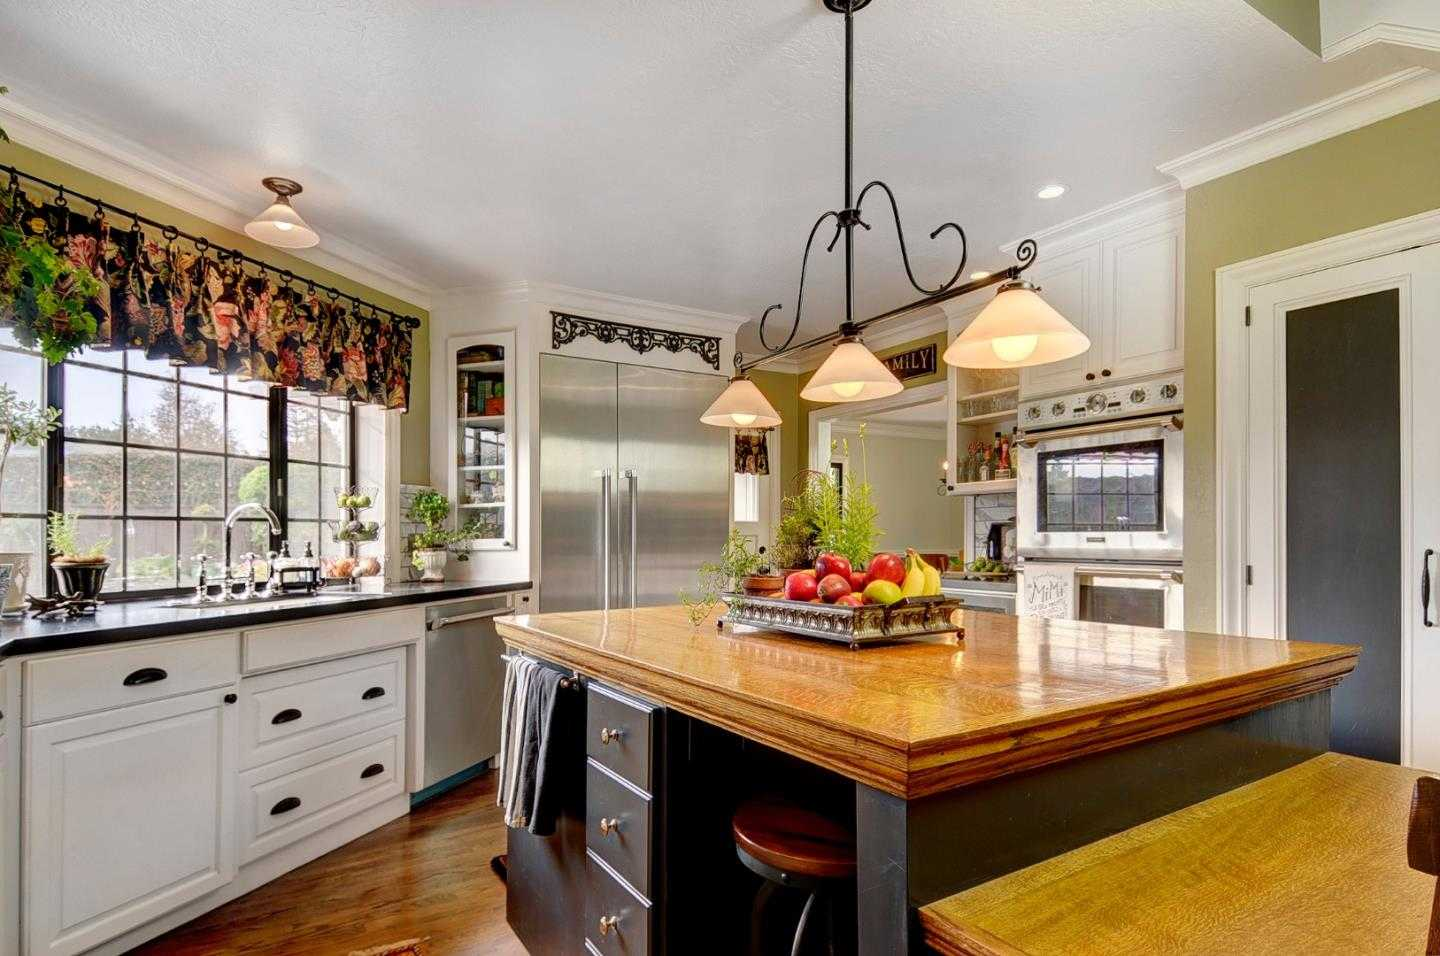 $1,525,000 - 5Br/3Ba -  for Sale in Redwood City